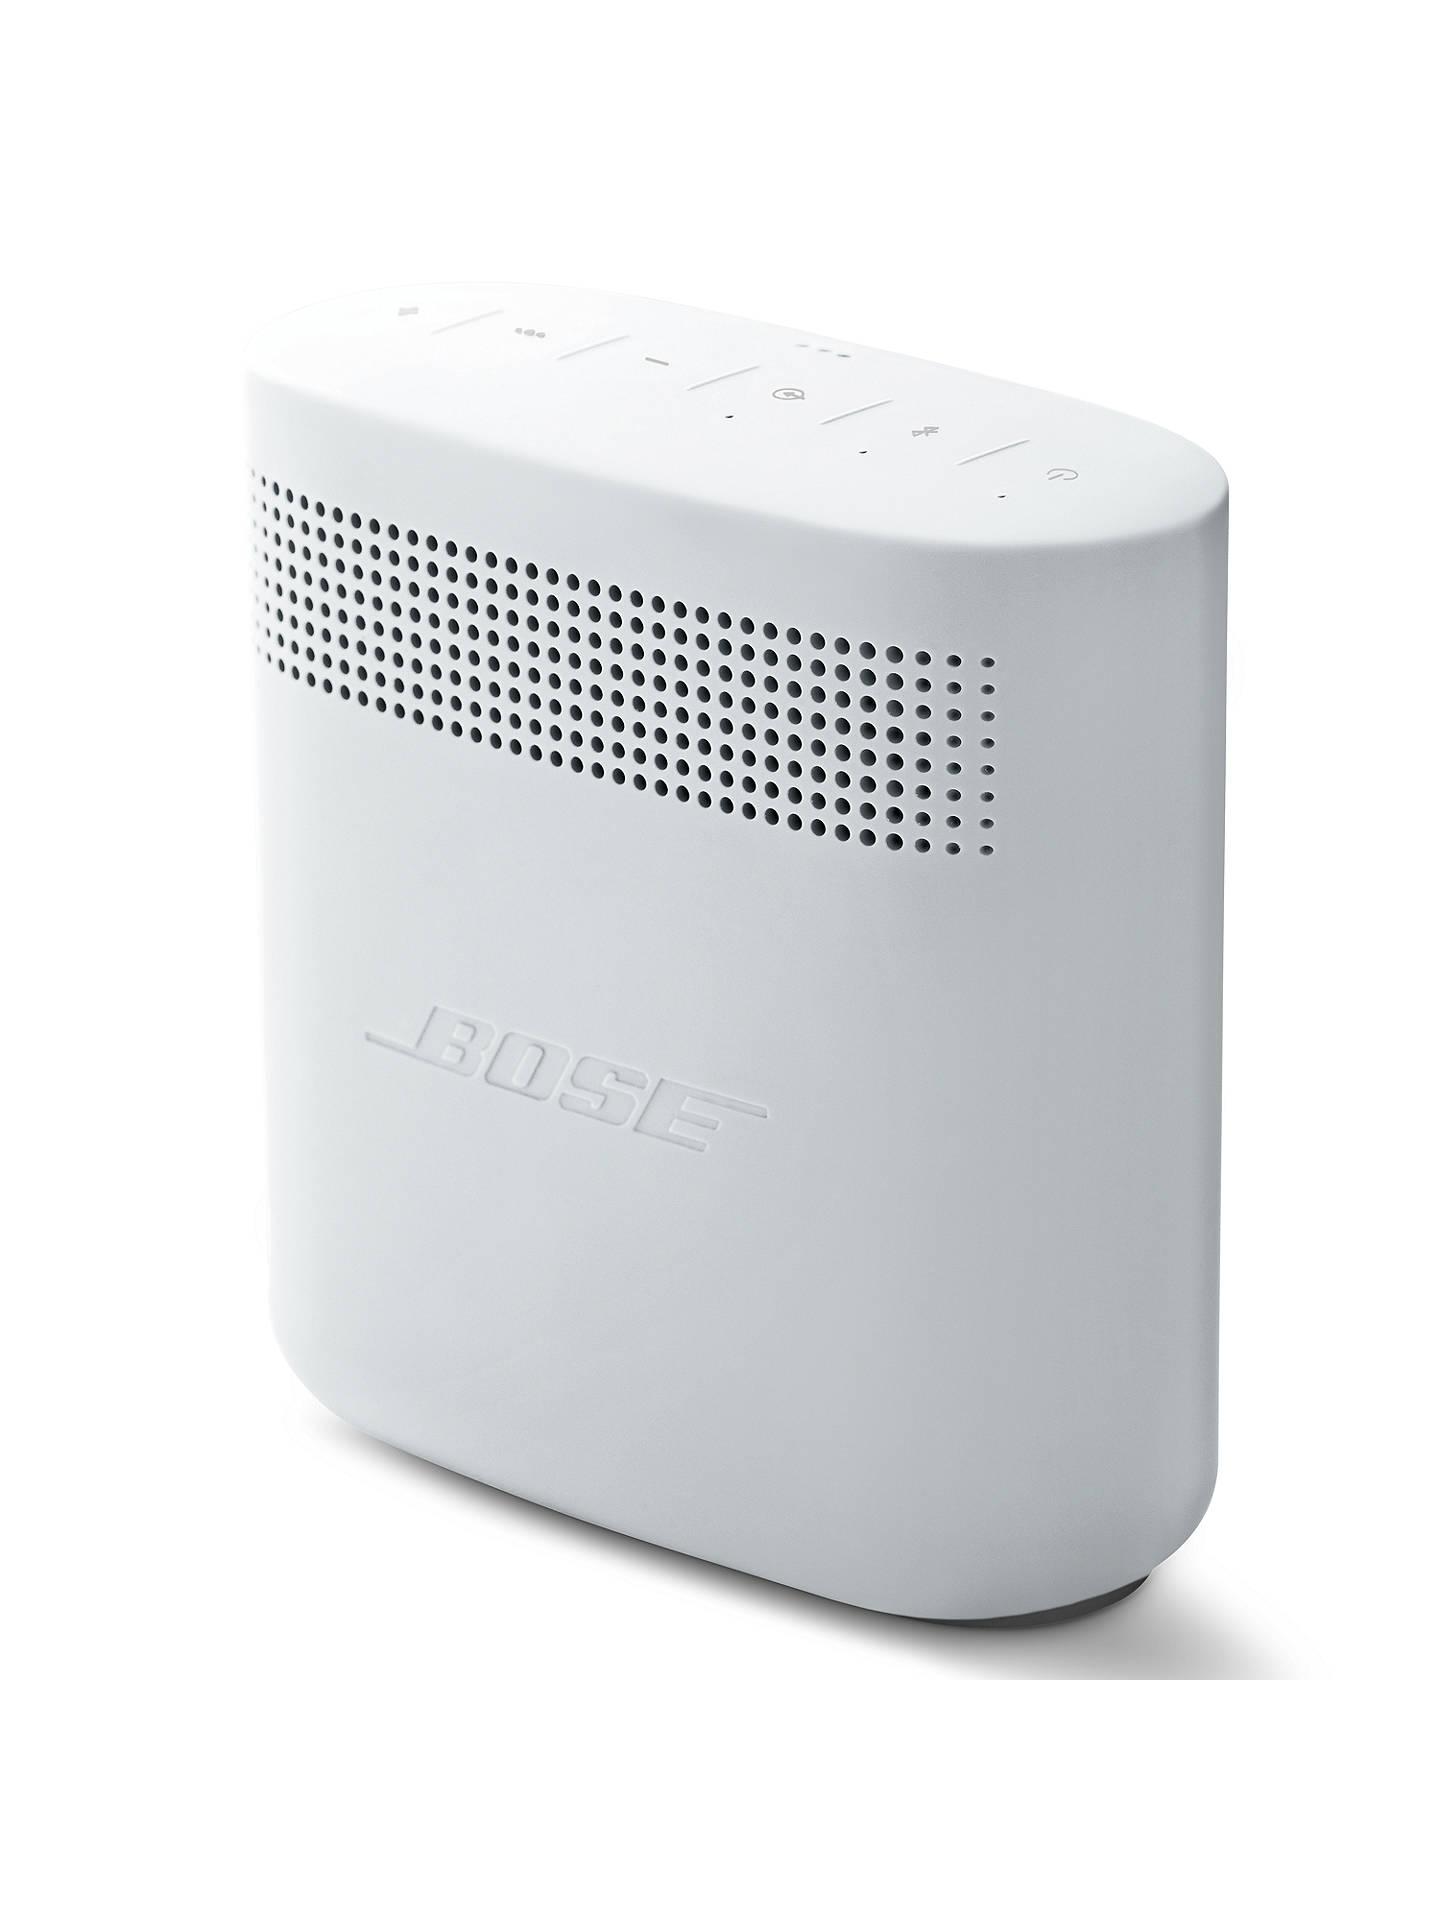 BuyBose® SoundLink® Color II Bluetooth Speaker, White Online at johnlewis.com